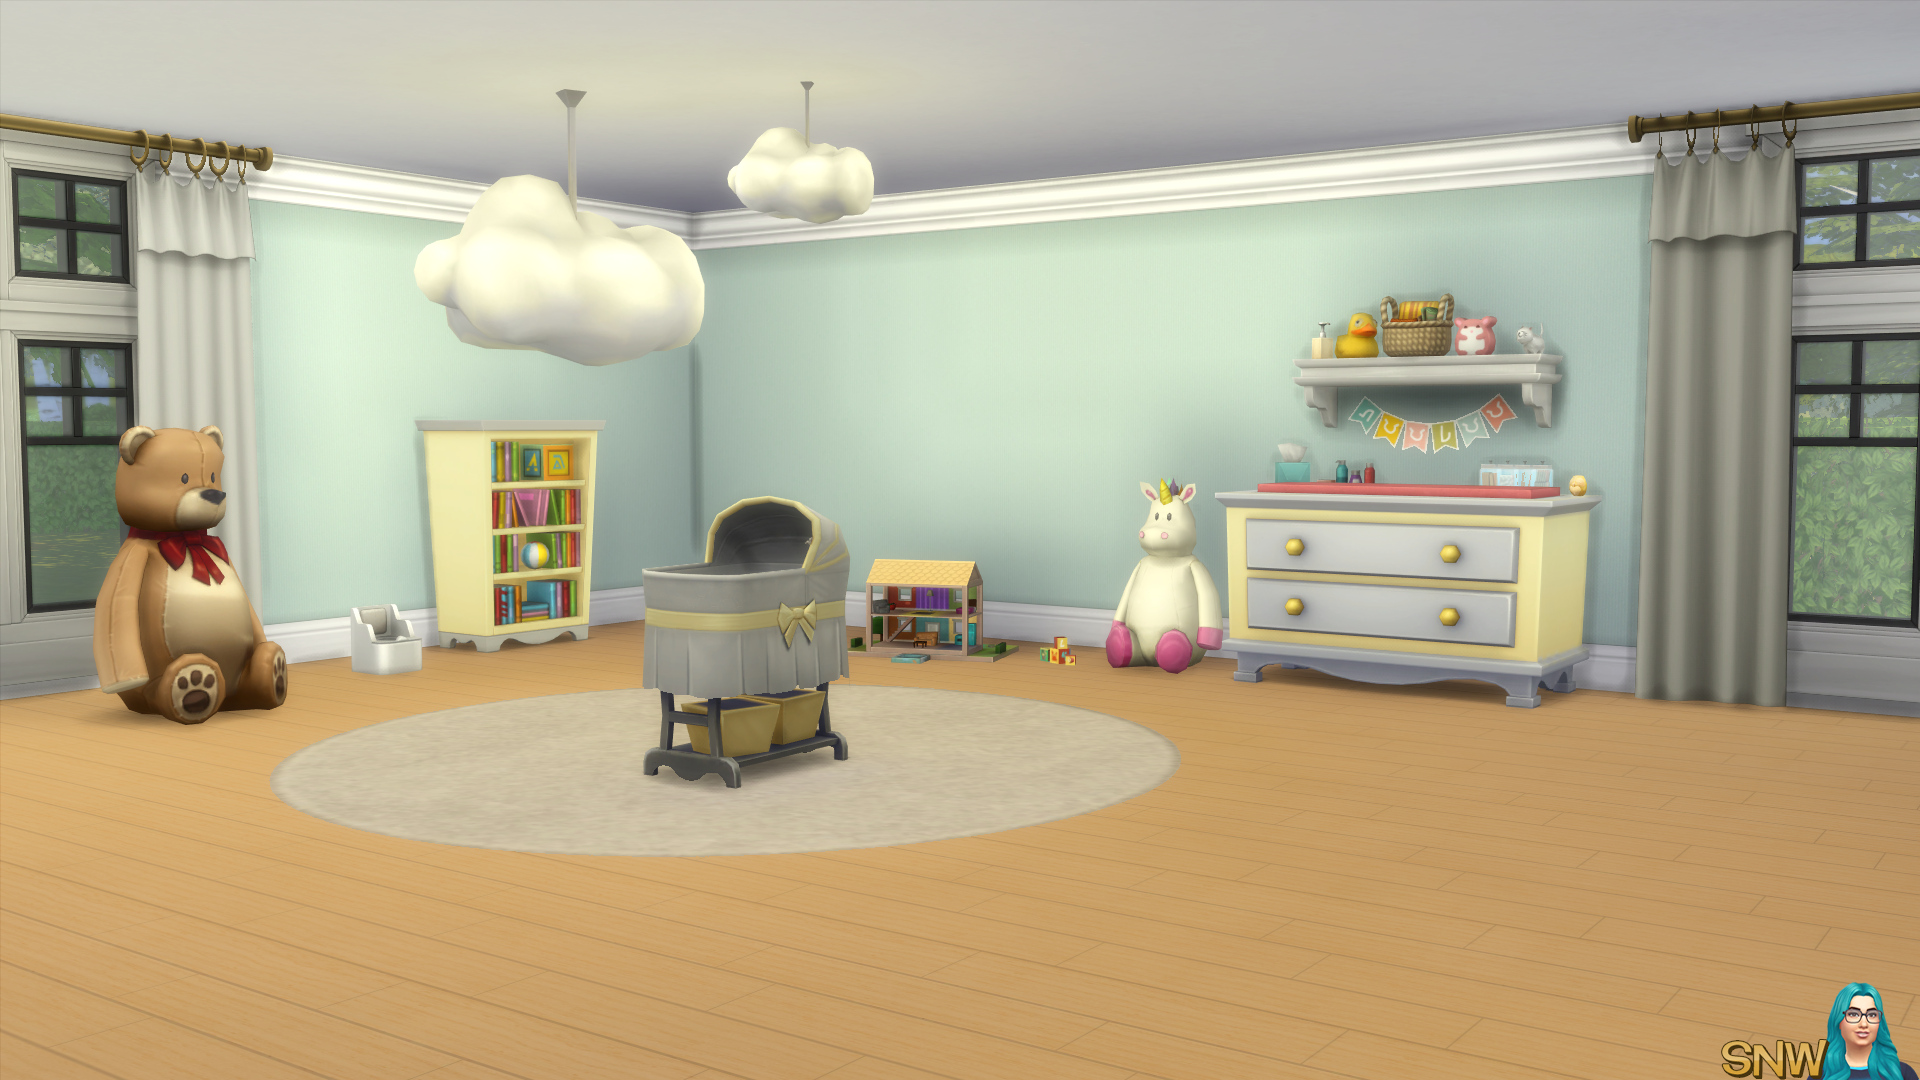 Nursery Walls Set #1 - Basics + Triangles